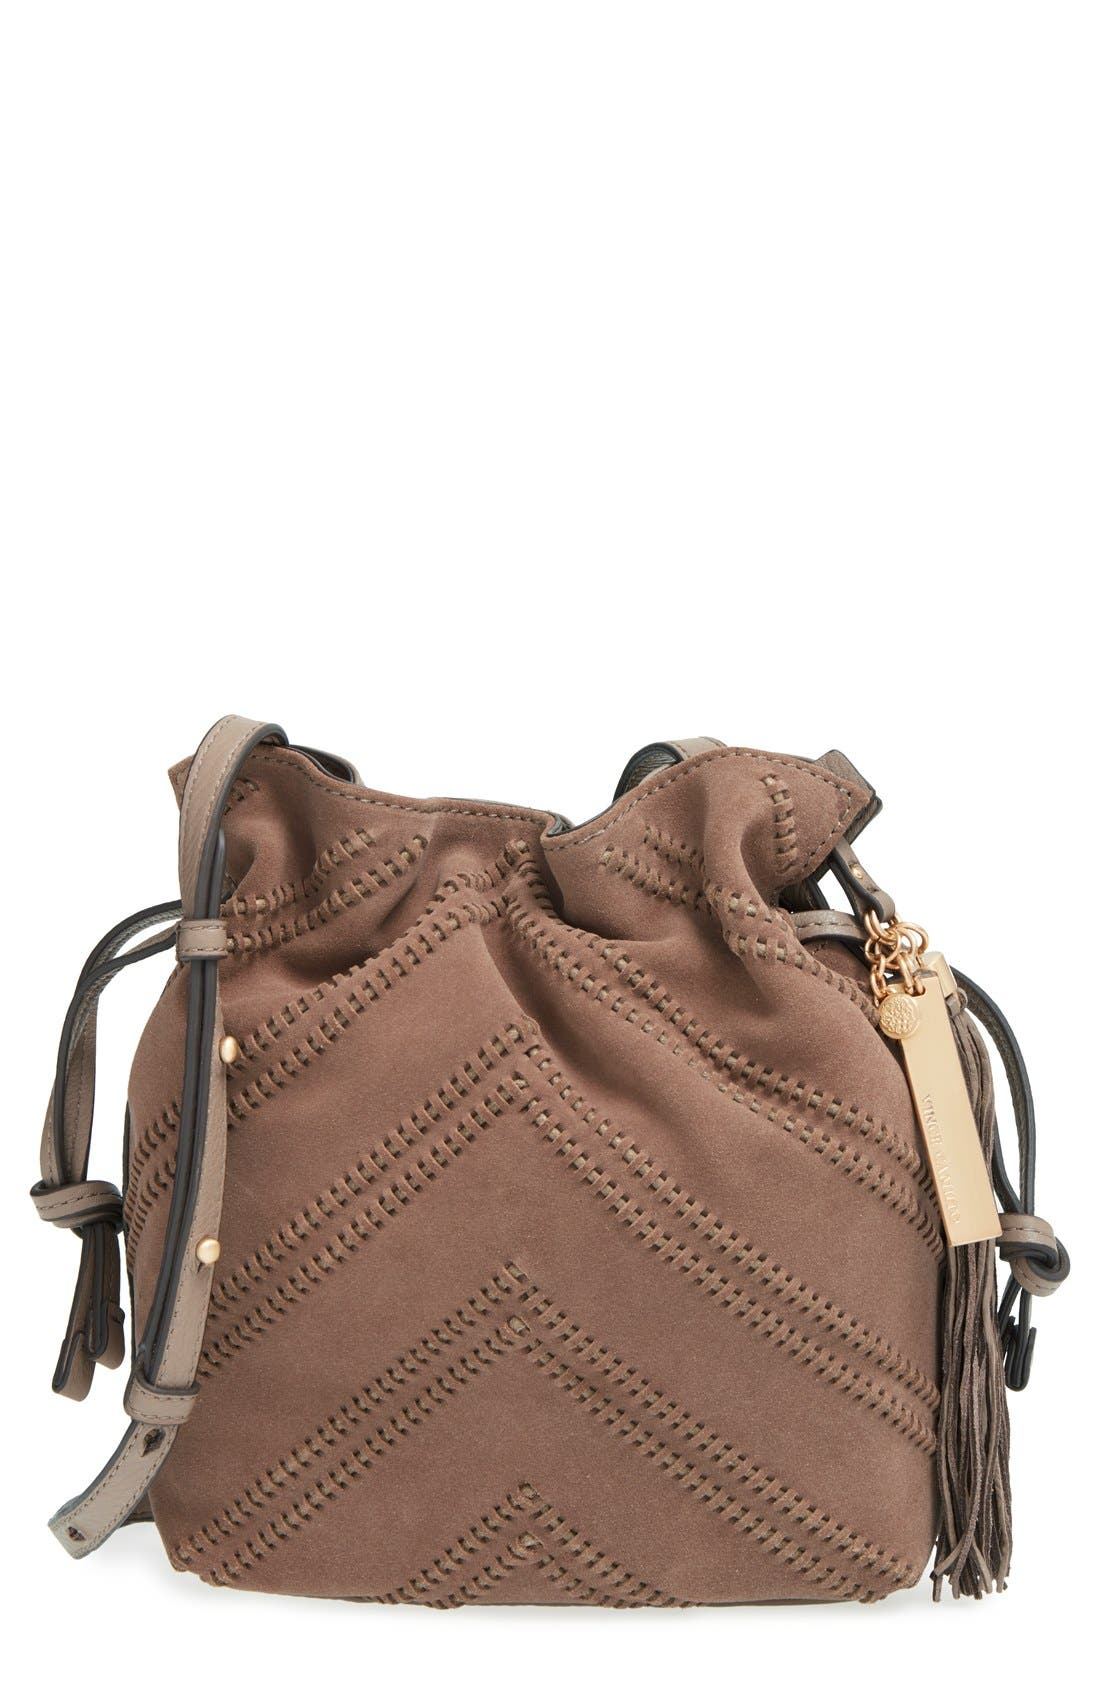 Main Image - Vince Camuto 'Nella' Crossbody Bag